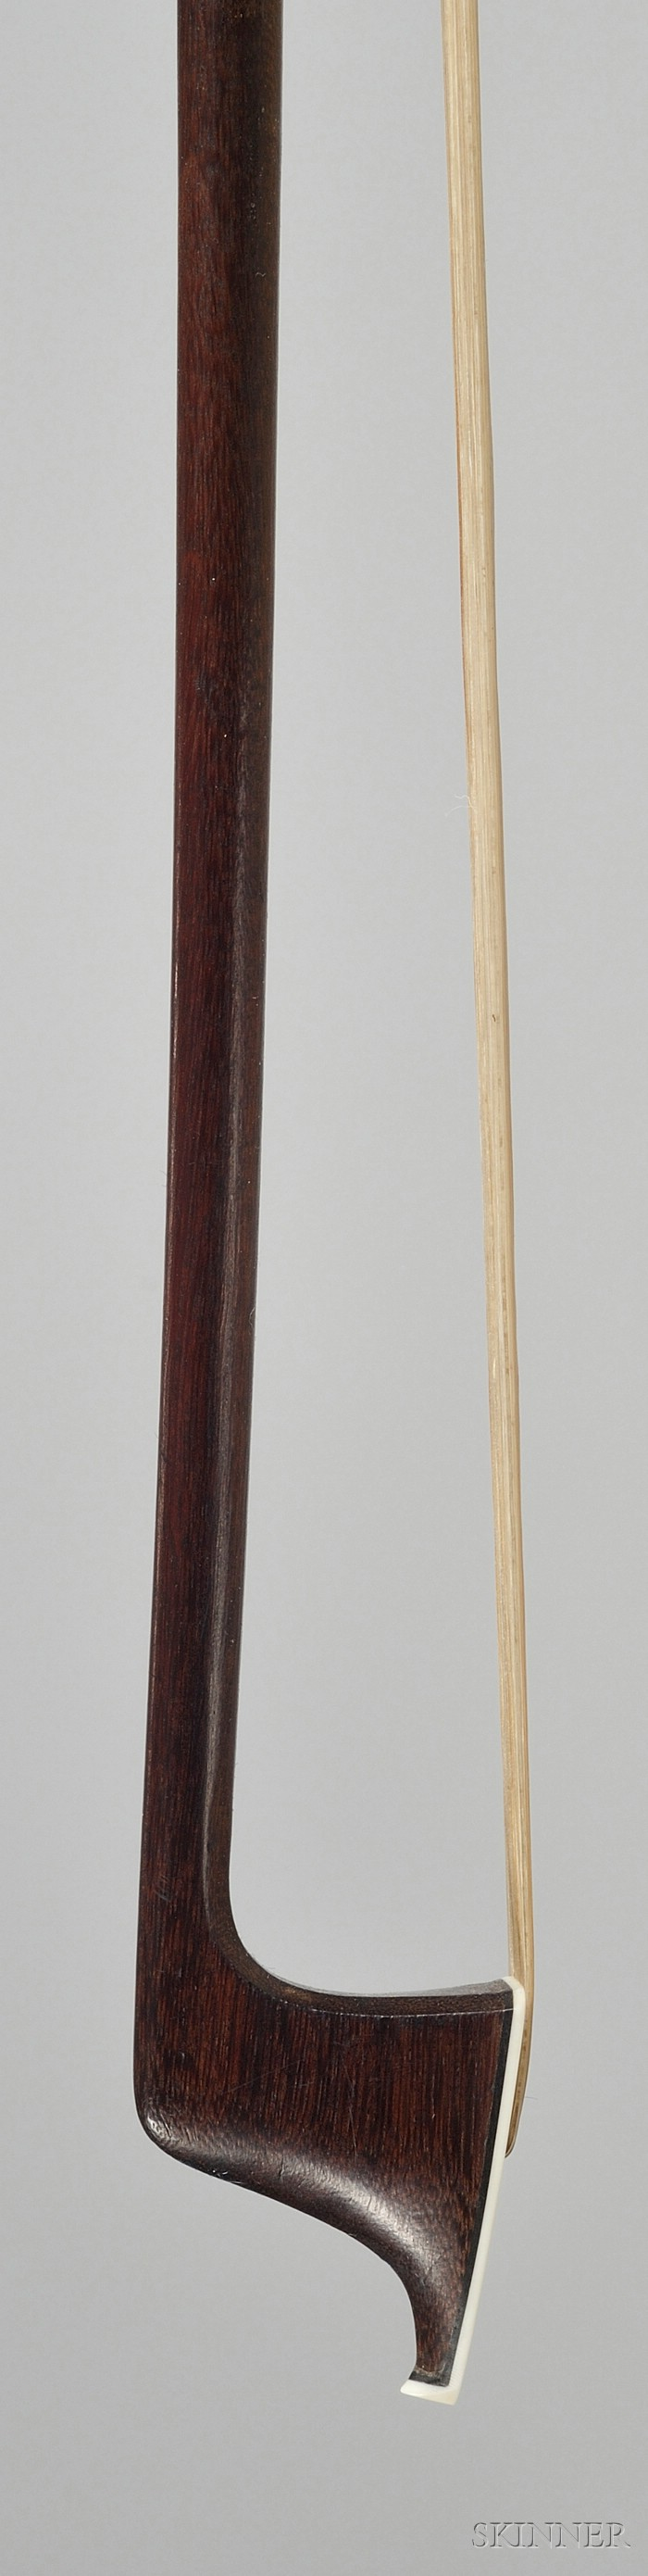 French Silver Mounted Violin Bow, Etienne Pajeot, c. 1835